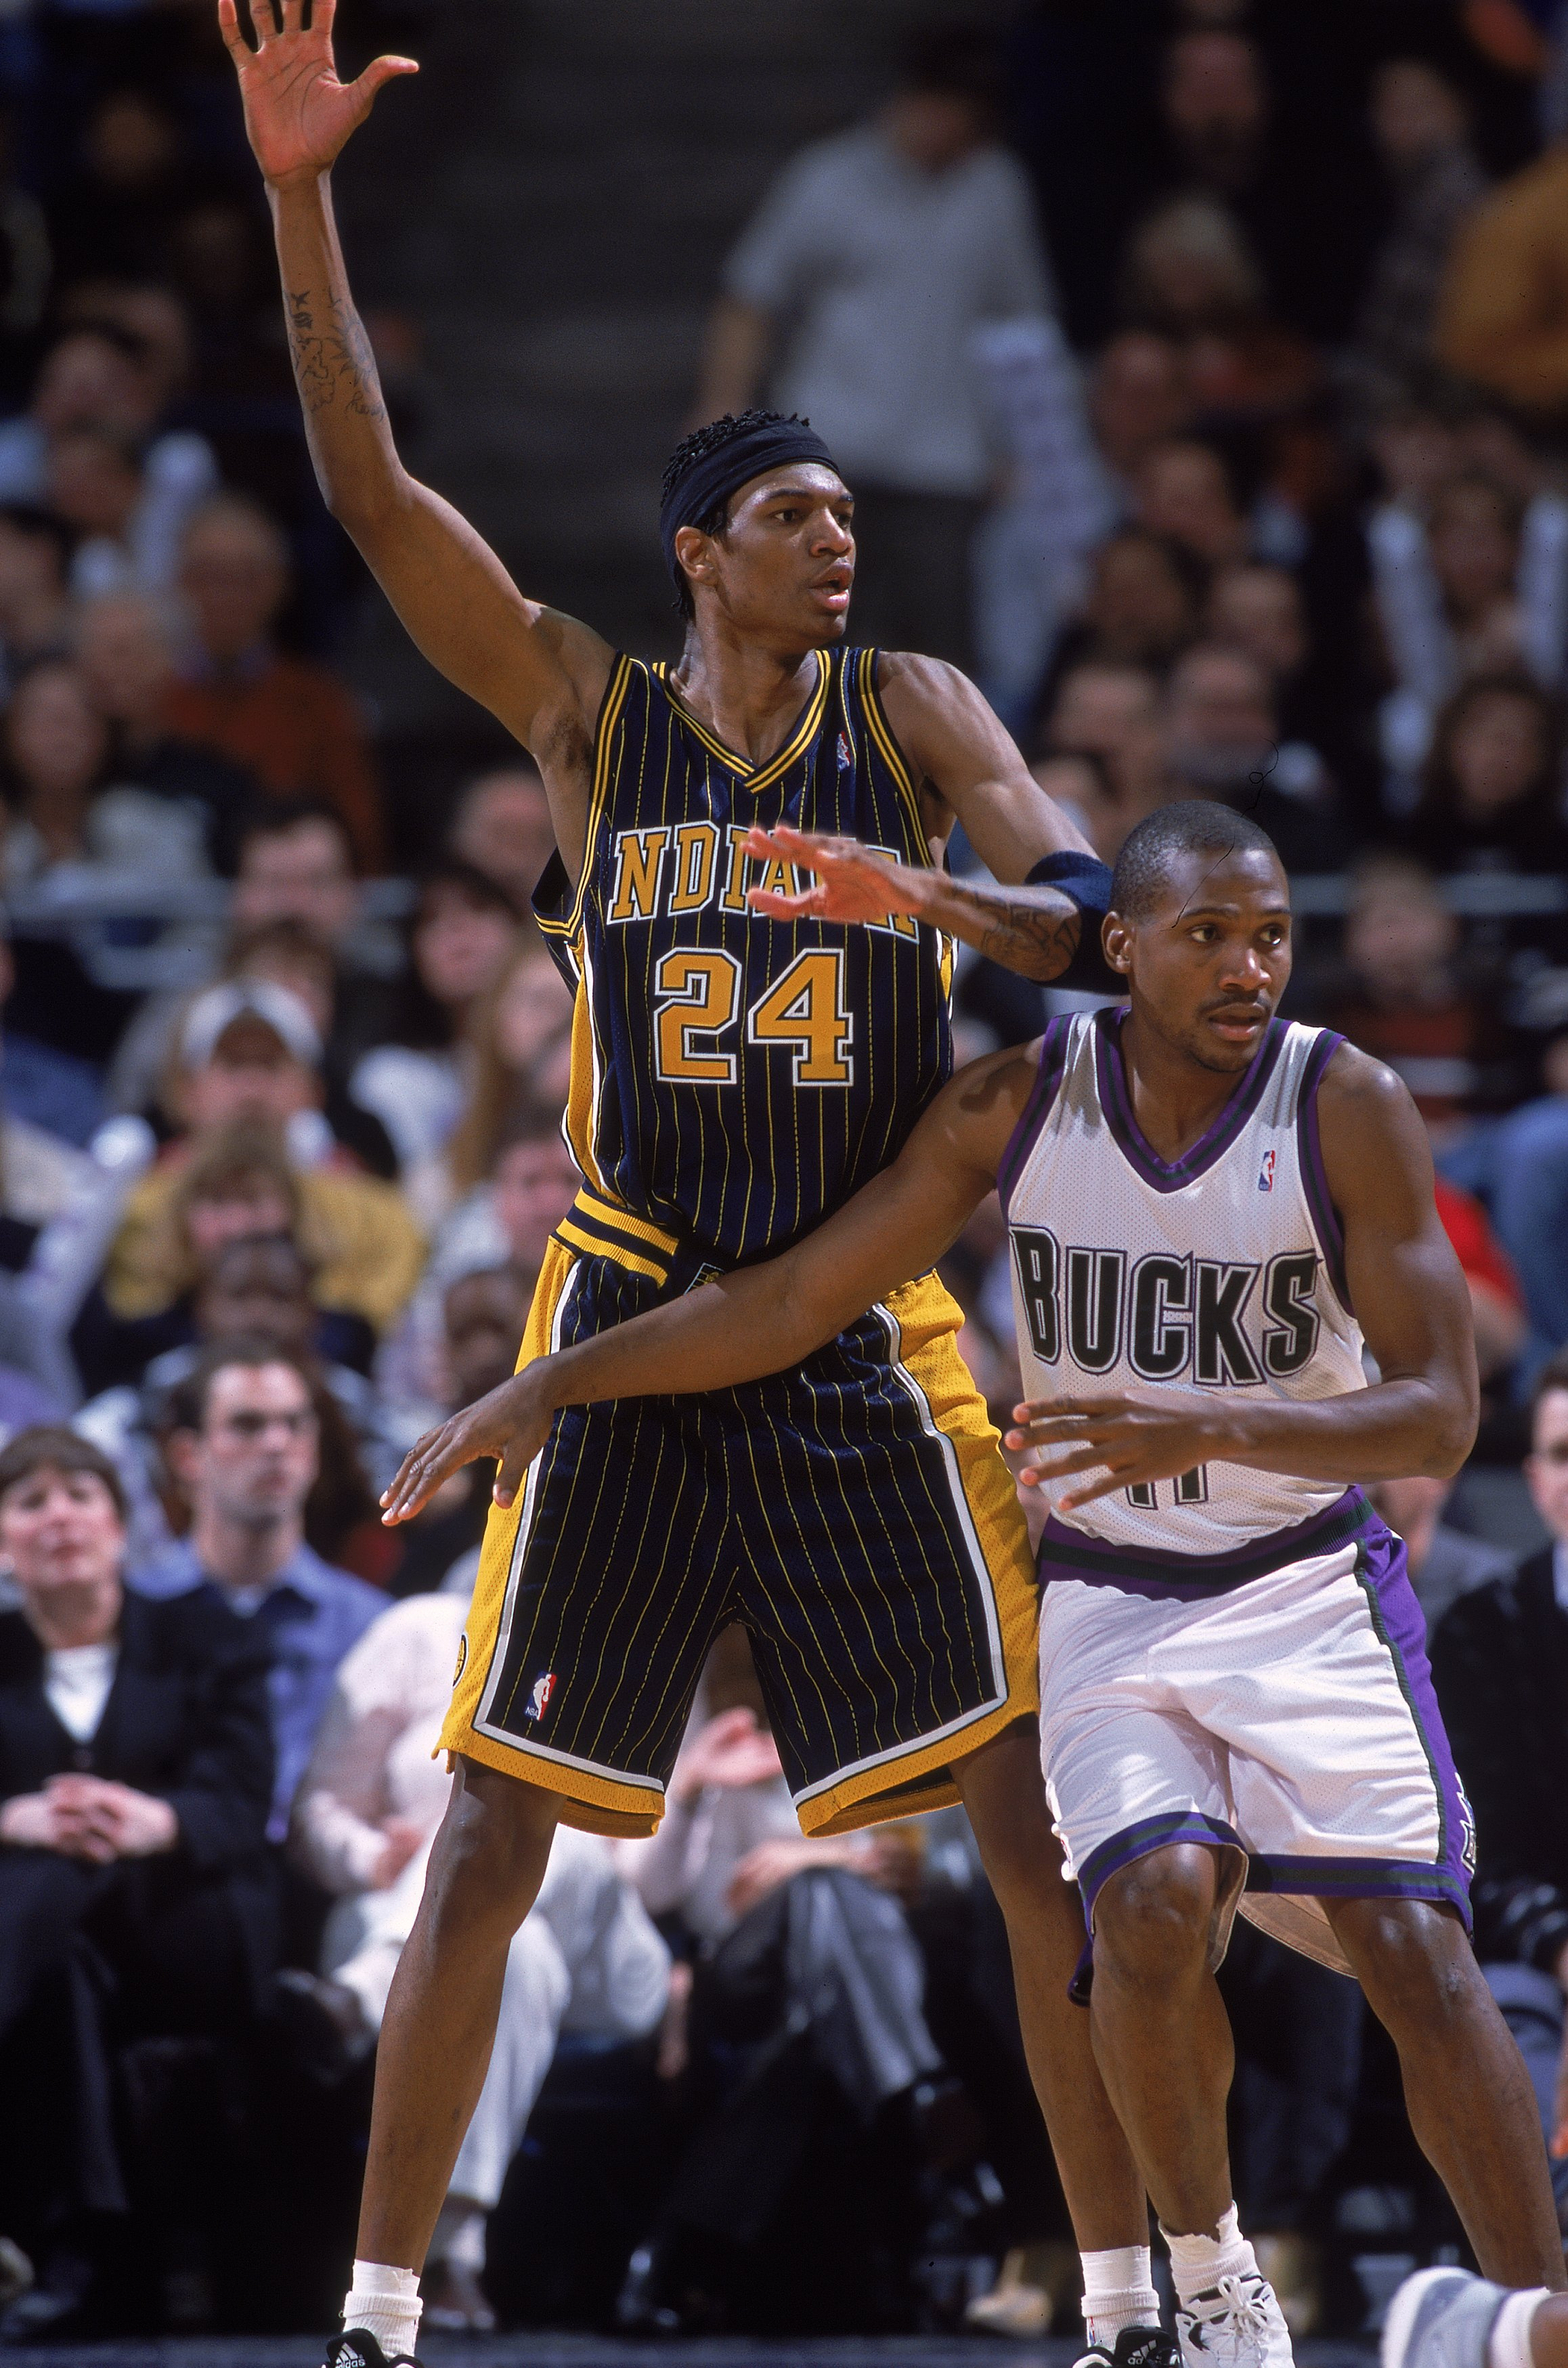 3 Feb 2001:  Jonathan Bender #24 of the Indiana Pacers waves to prove he is open against Lindsey Hunter #11 of the Milwaukee Bucks during the game at the Bradley Center in Milwaukee, Wisconsin. The Bucks defeated the Pacers 104-85.  NOTE TO USER: It is ex